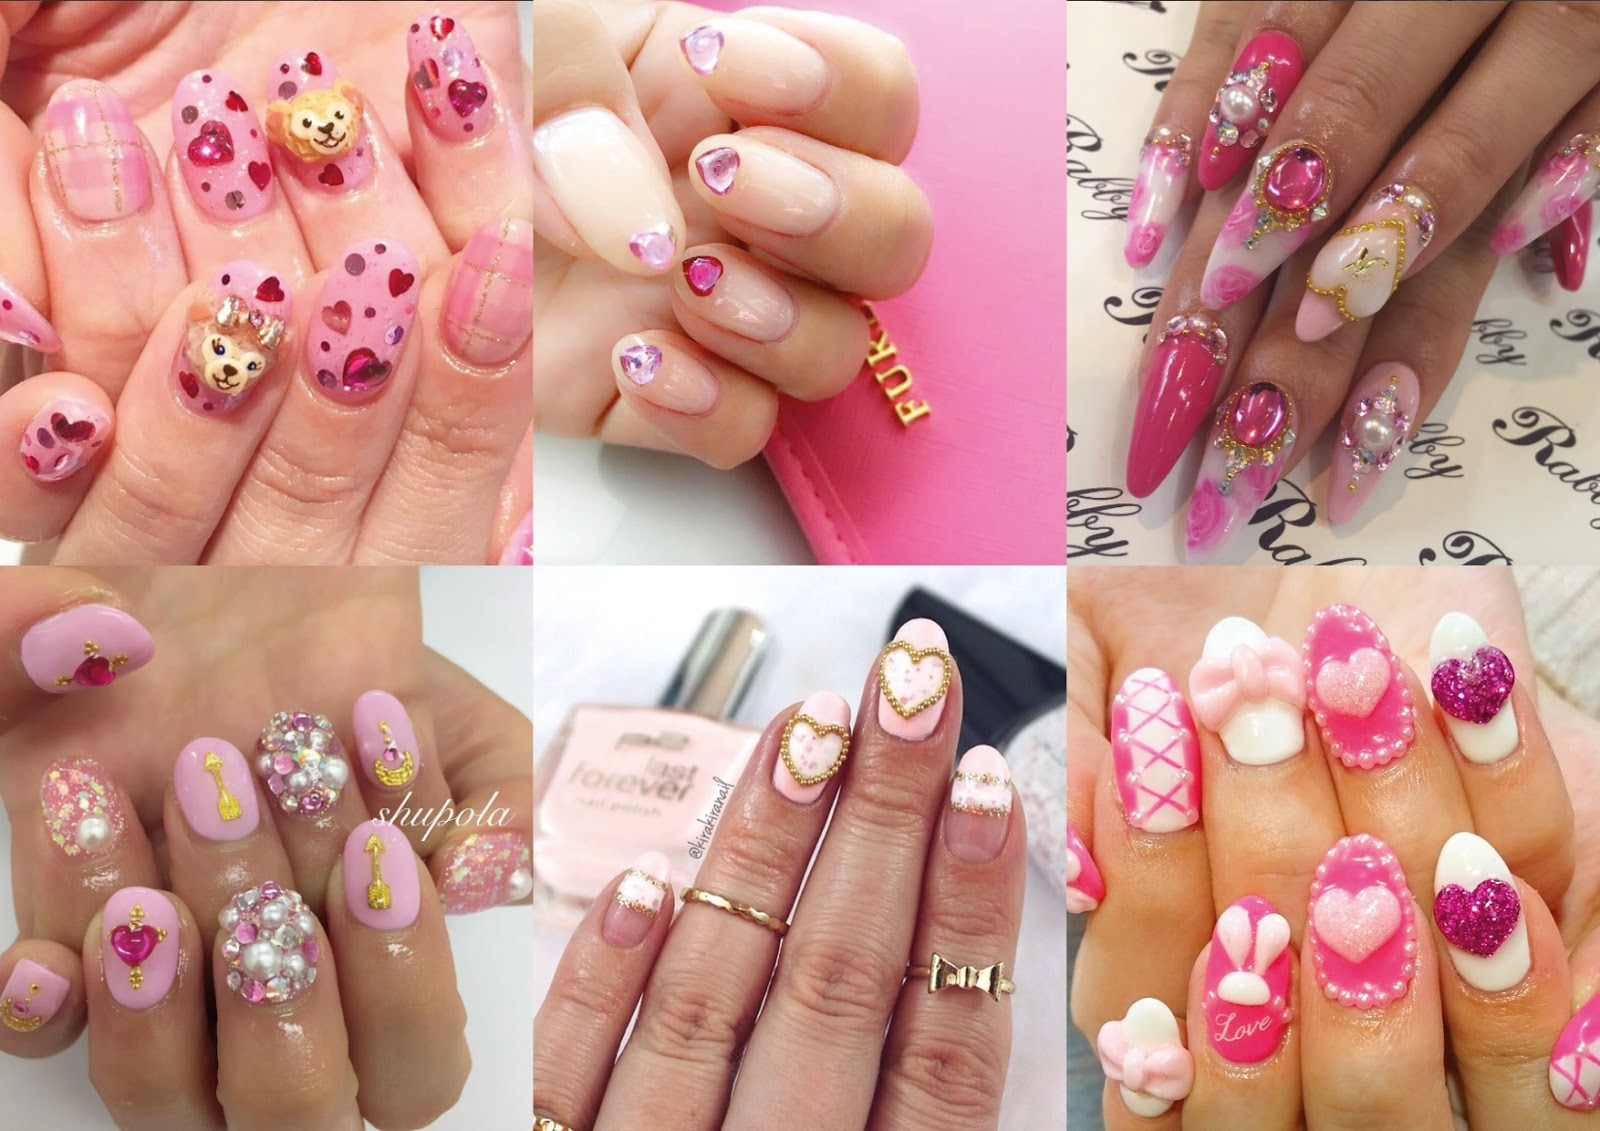 kawaii gyaru nails, false nails, Japanese nail art